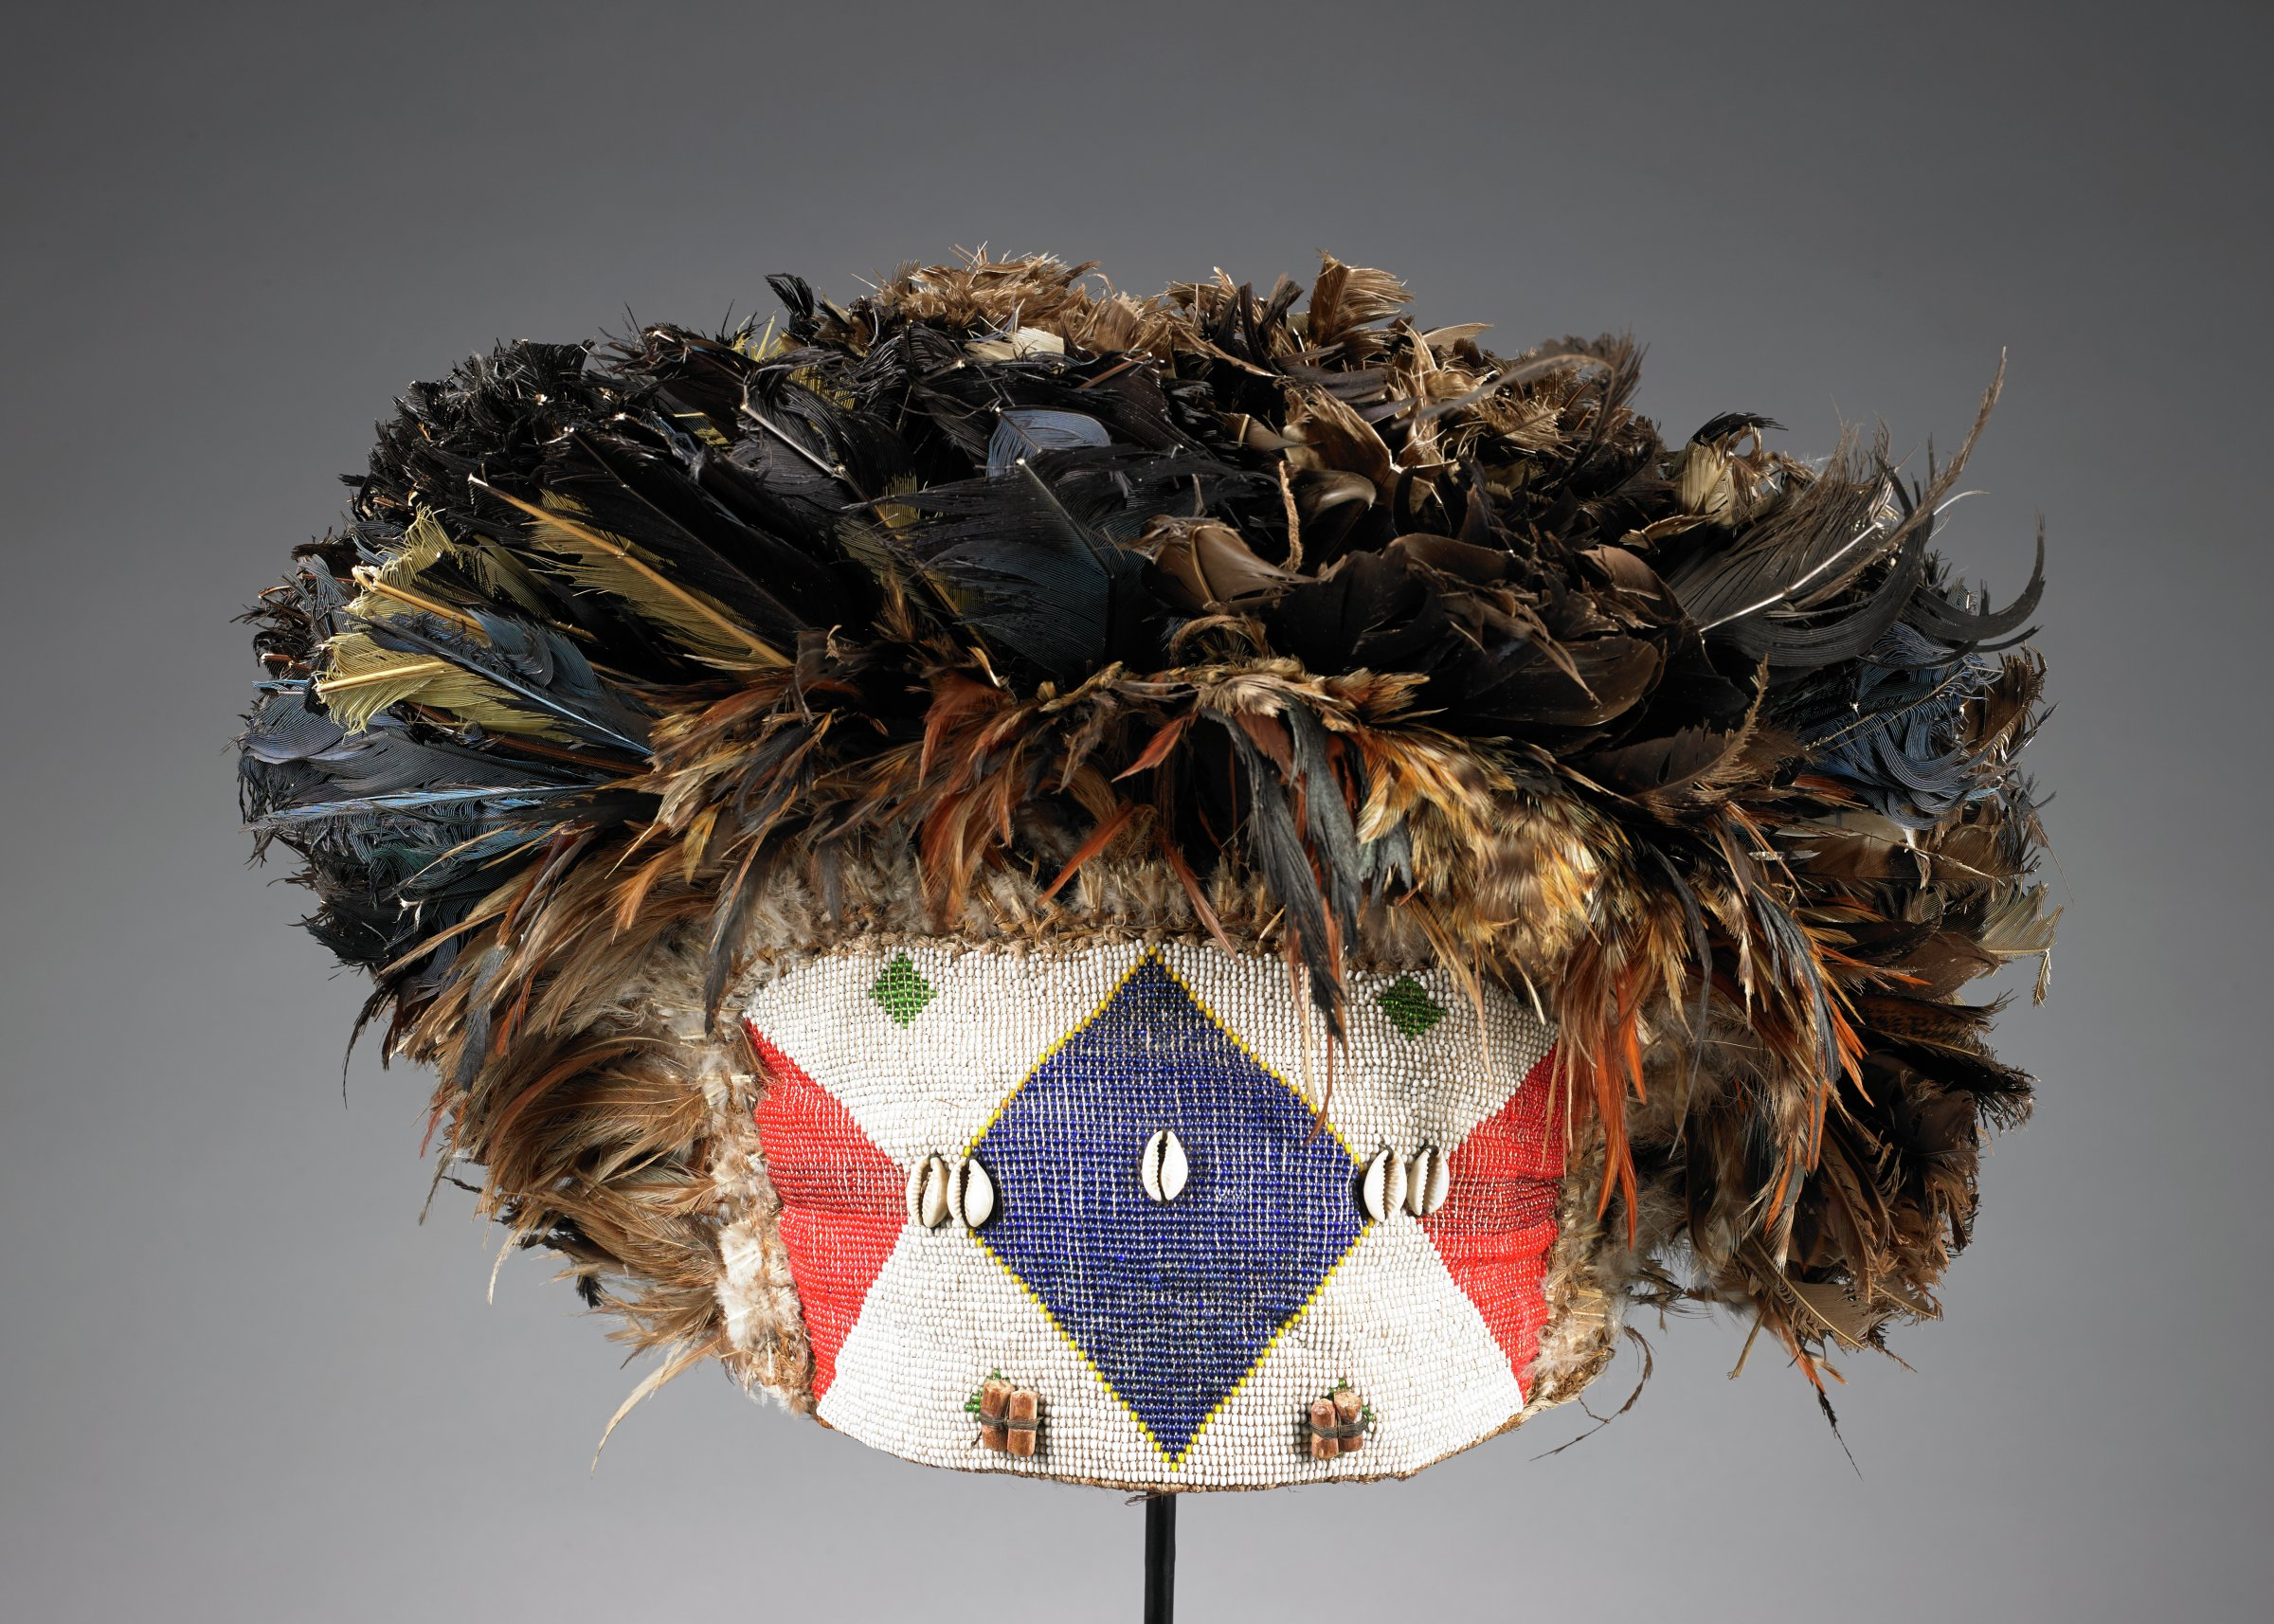 Headdress of burlap and animal hide, front beaded with red, blue, white, and green glass beads in lozenge and triangle patterns. Five cowrie shells and four wooden peg beads attached on top of surface of glass beads. Wooden pegs, joined in pairs, cover small lozenges of green glass beads. White, brown, black, and blue feathers cover top, sides and back of headdress in spherical shape (slightly flattened in back). Five short wooden dowels attached to back, arranged two, one, two.